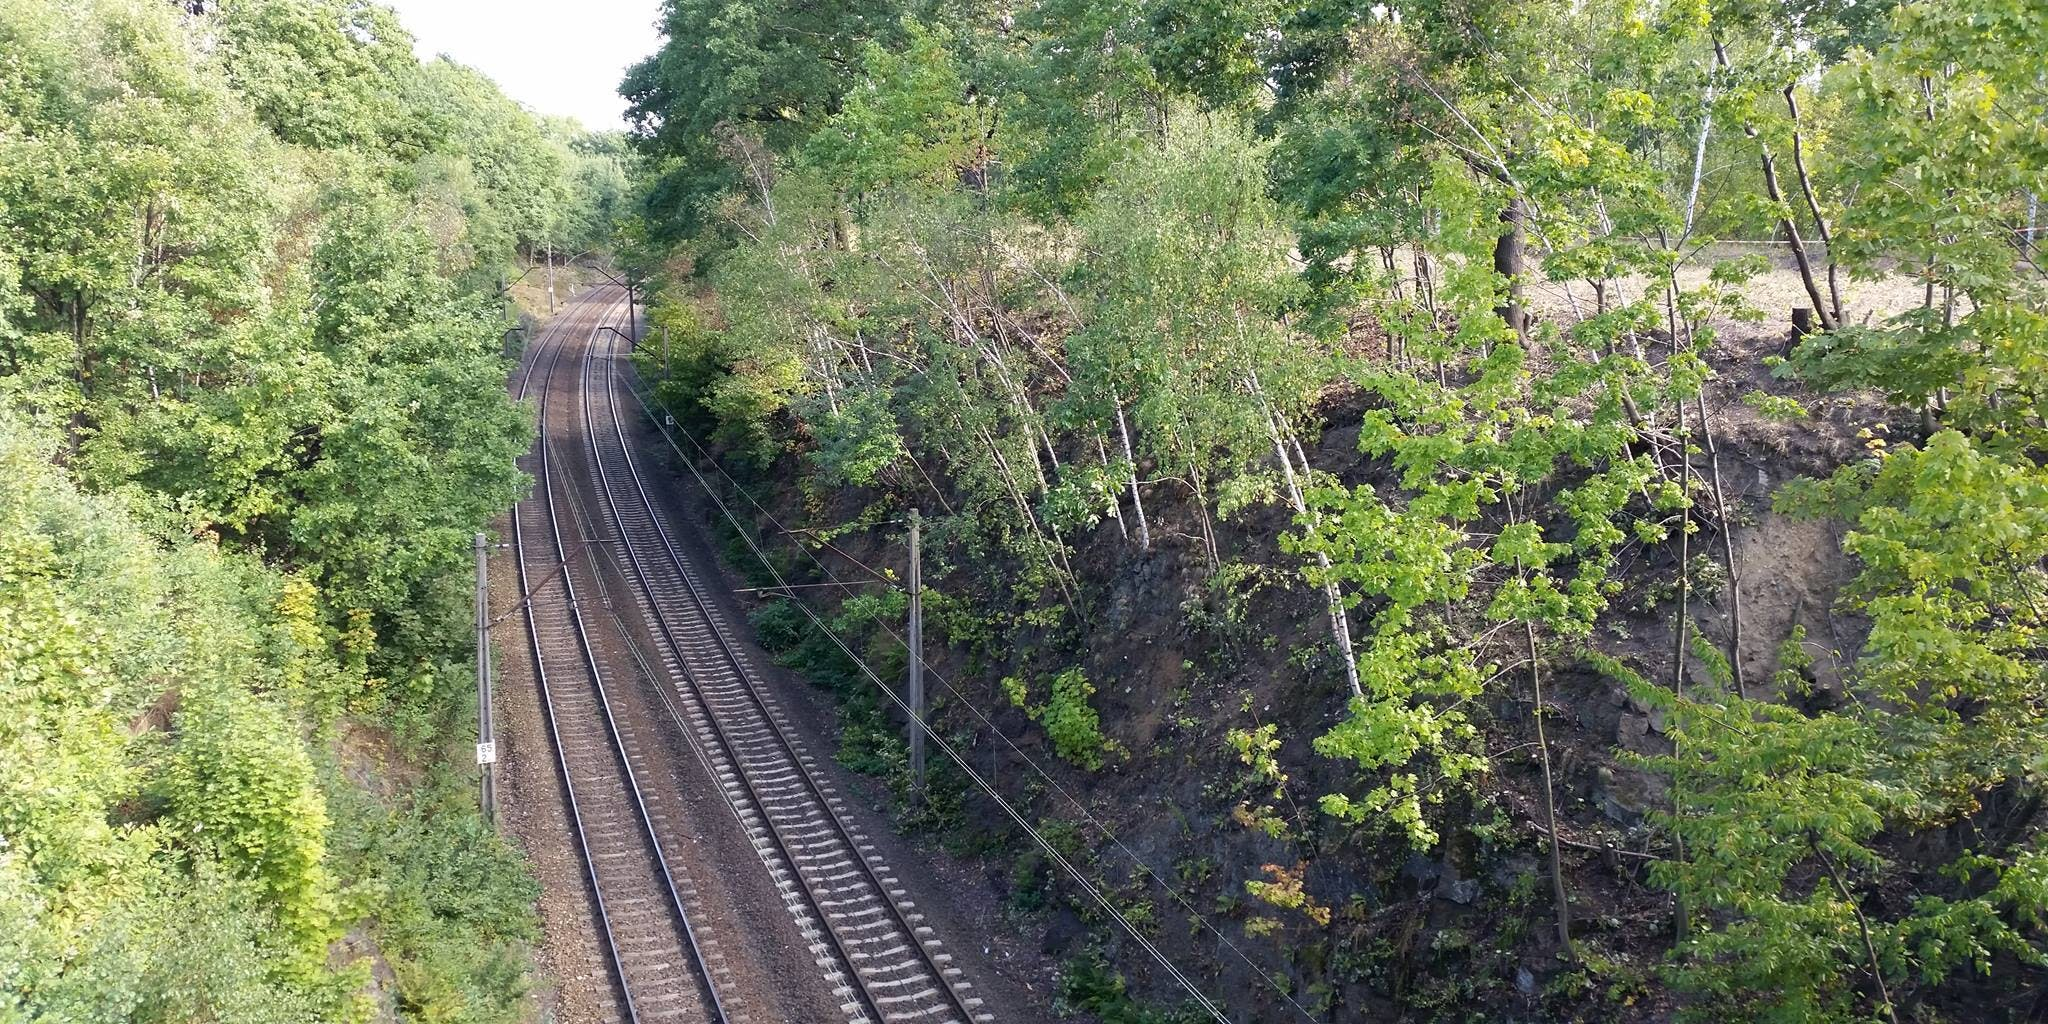 Beneath these tracks are the supposed hiding place of the Gold Train in Wałbrzych, Poland.